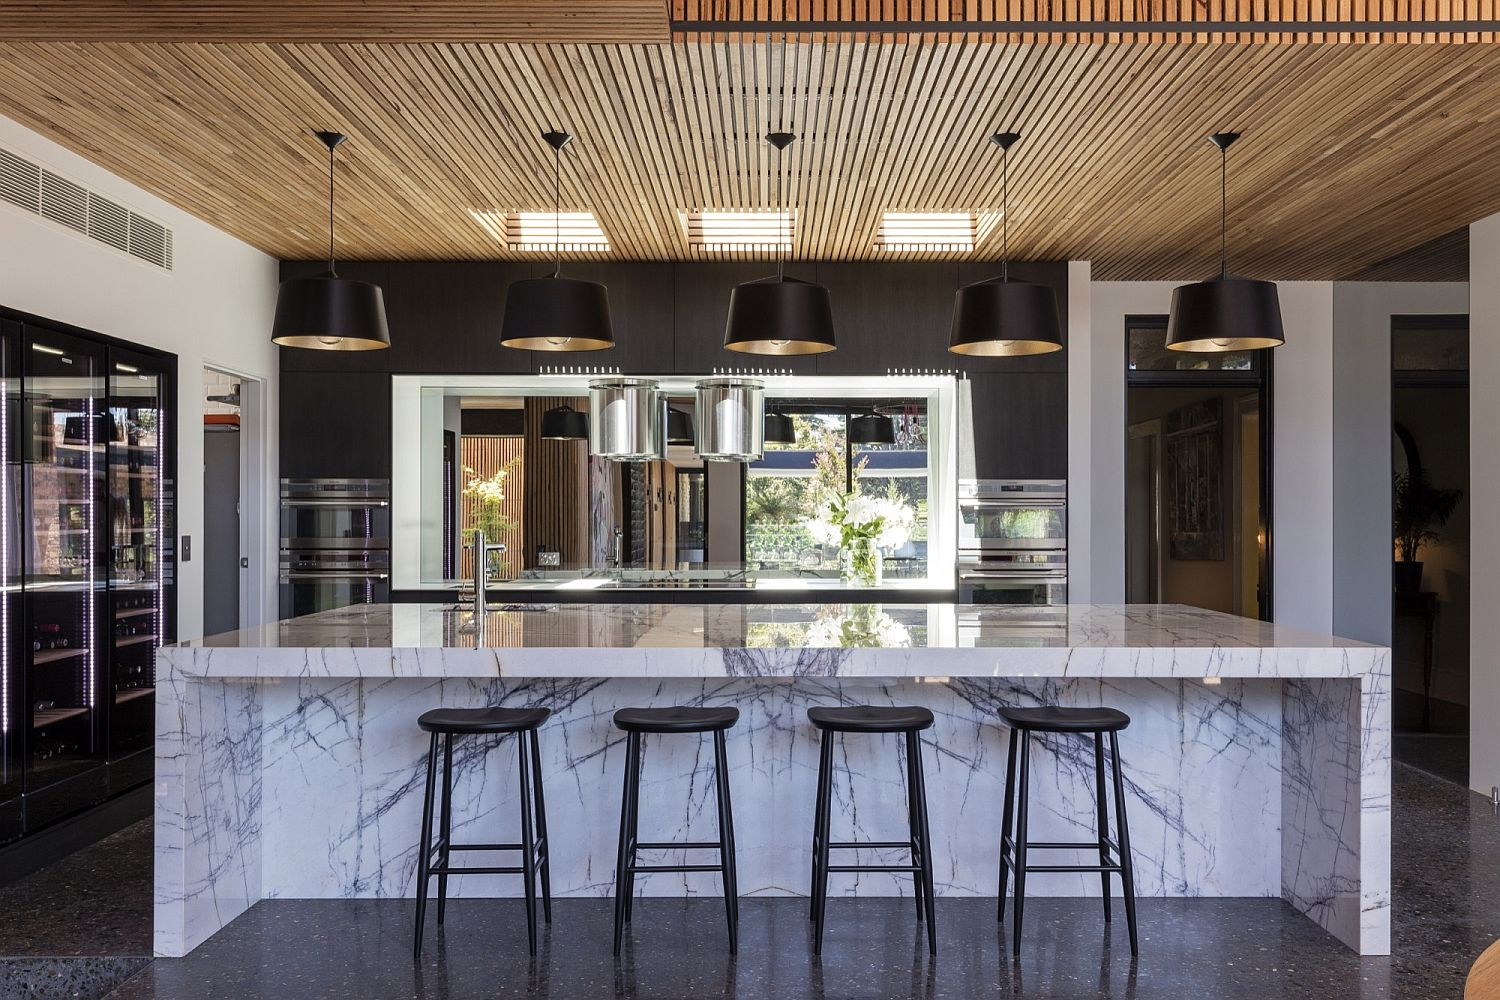 Marble kitchen island with pendant lighting above it